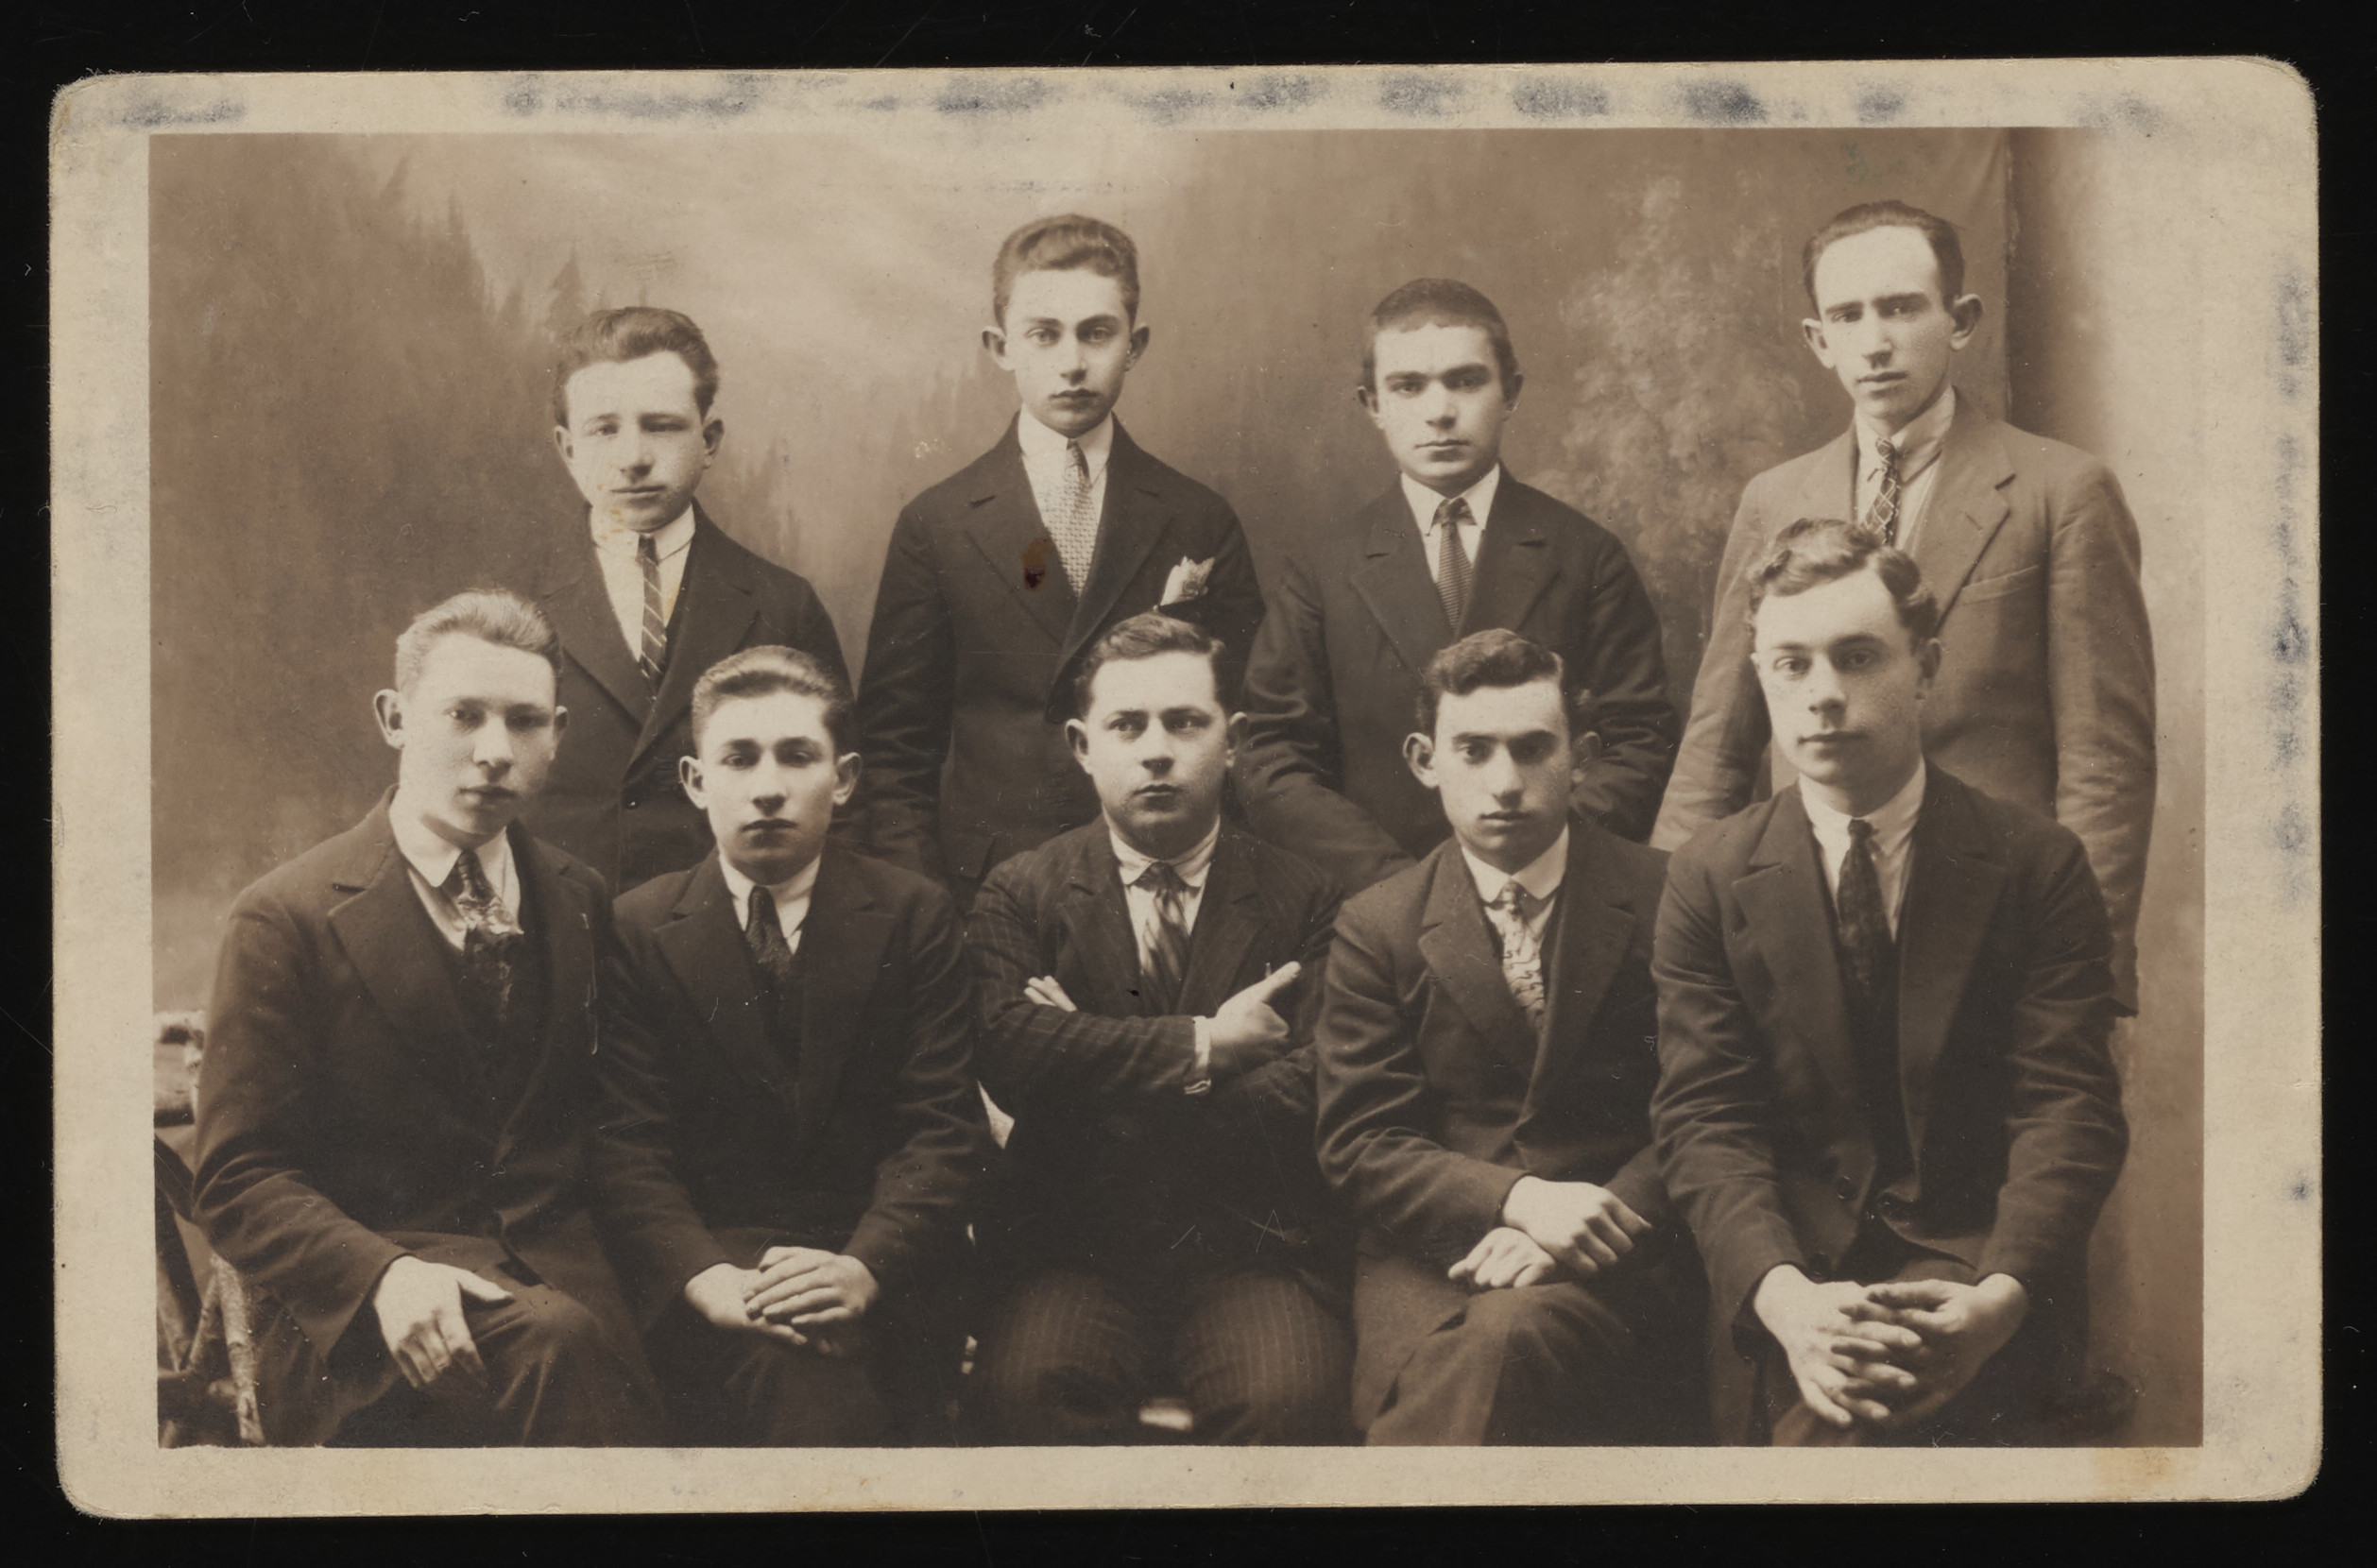 Group portrait of members of the Hitachdut Zionist youth group in Kolbuszowa.  Sitting from left to right are Moszefeld, Szmuel Trompeter, Koller (the Hebrew teacher), Leibus Aszen and Avrum Bilfeld.  Standing from the left are Moisze Birnbaum, Leibus Warhaft, Moisze Tencer and Ortzman.